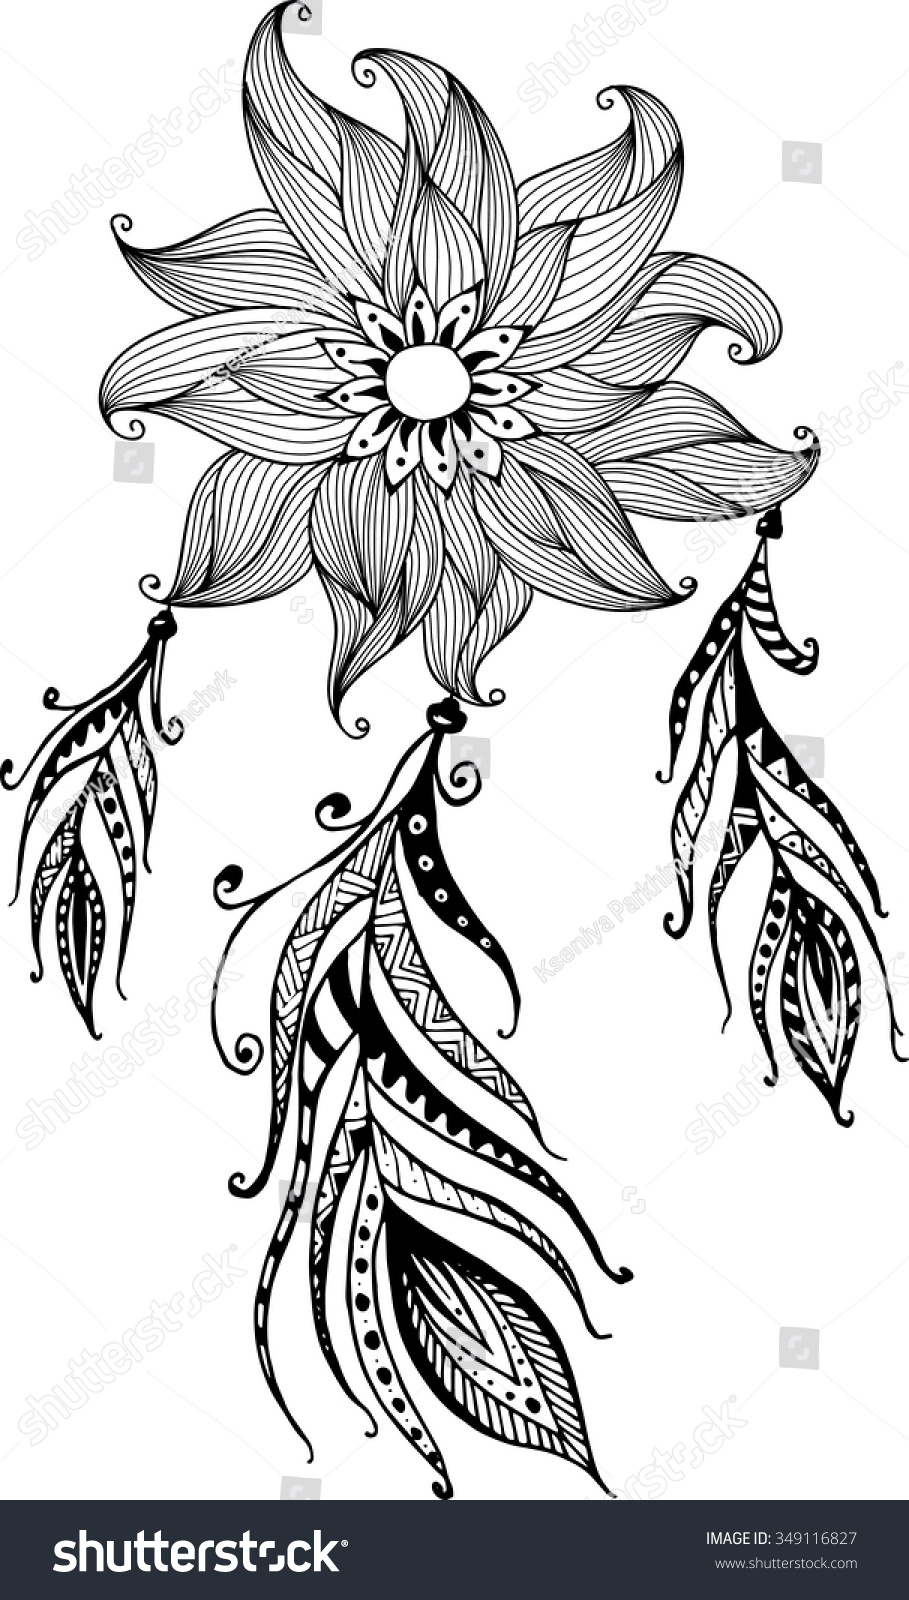 Handdrawn Flower Mandala Dreamcatcher Feathers Ethnic